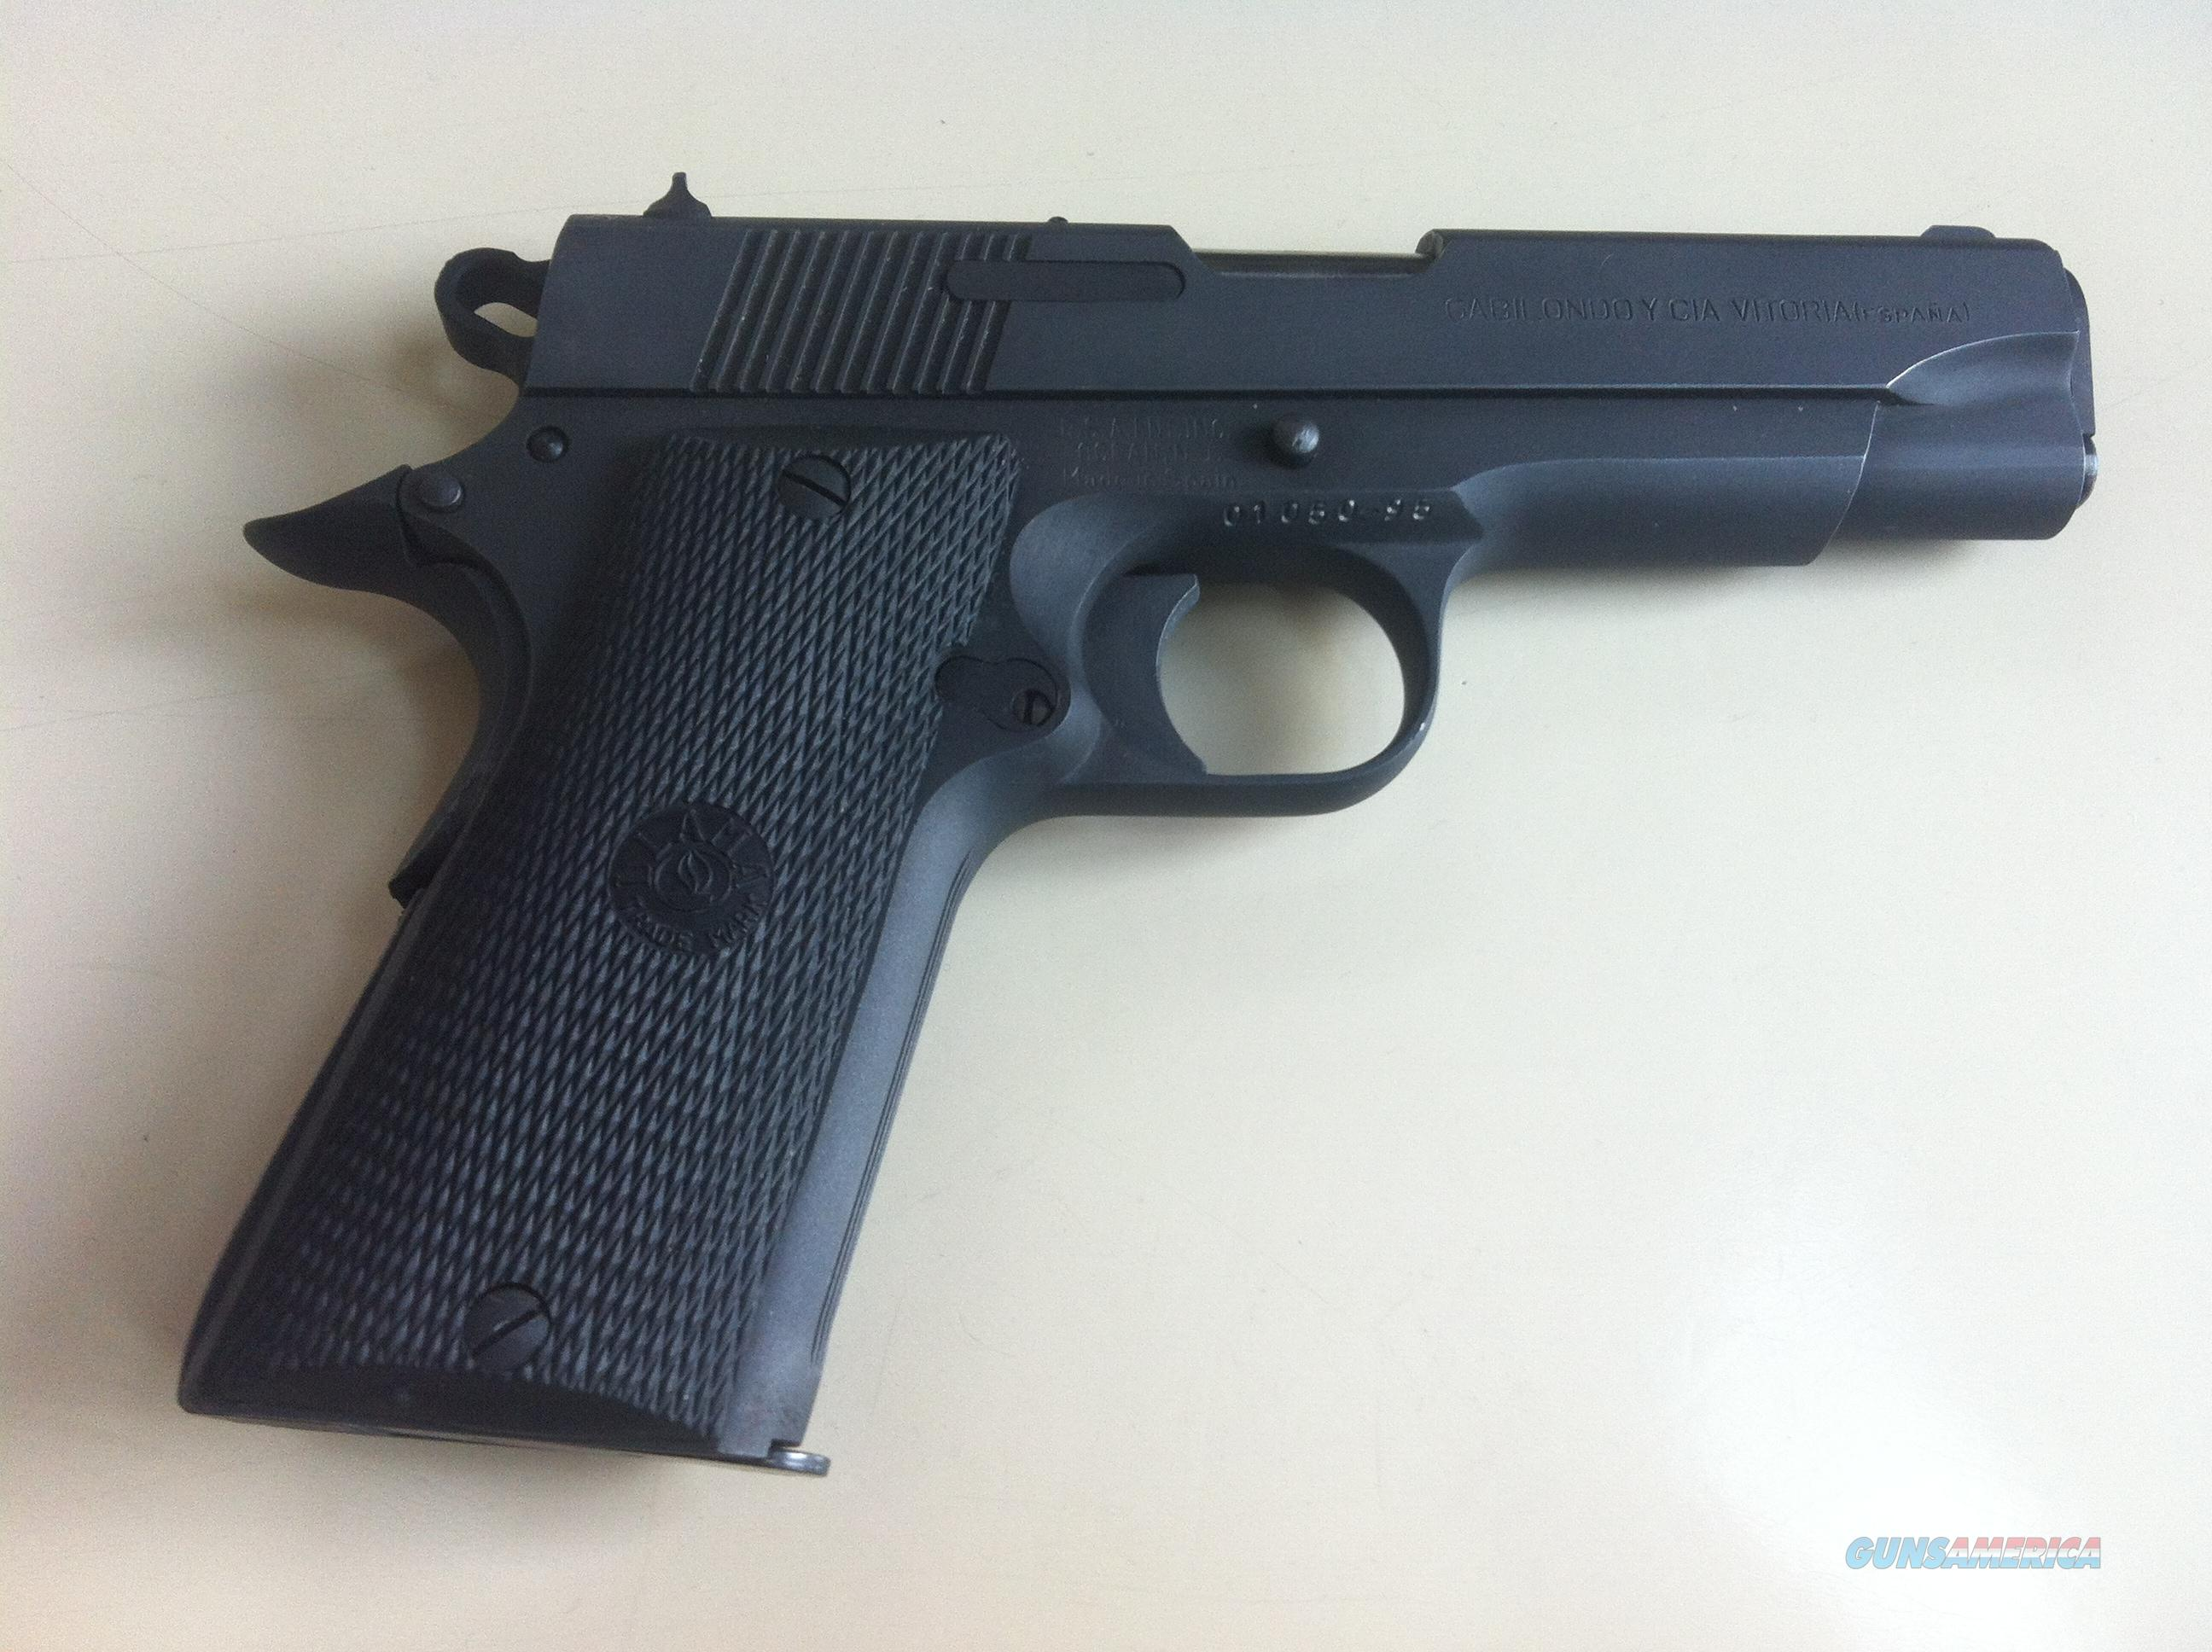 c41798fcd LLAMA .45 CAL. 1911        PRICE LOWERED ... for sale